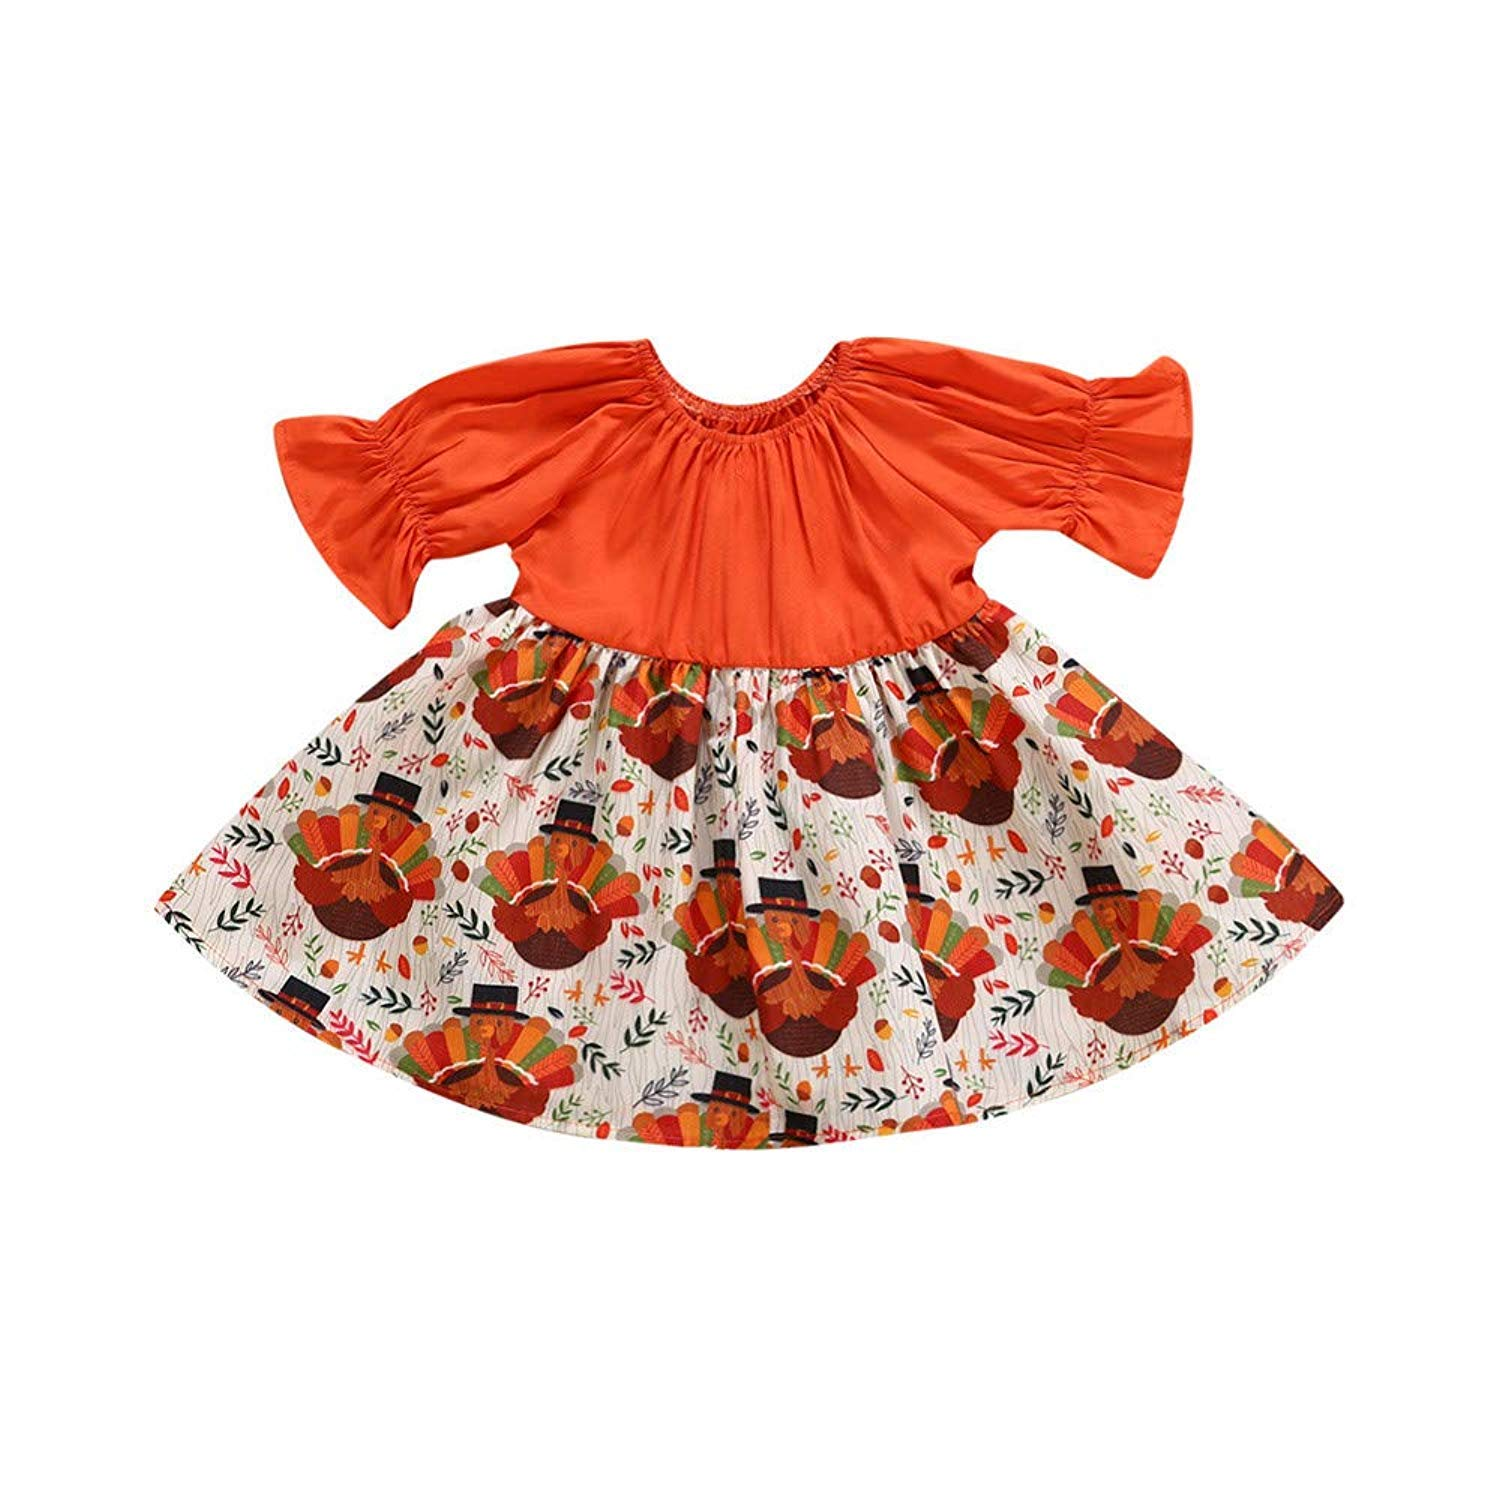 ed868cac6 Baby Girls   Online Shopping for Clothing